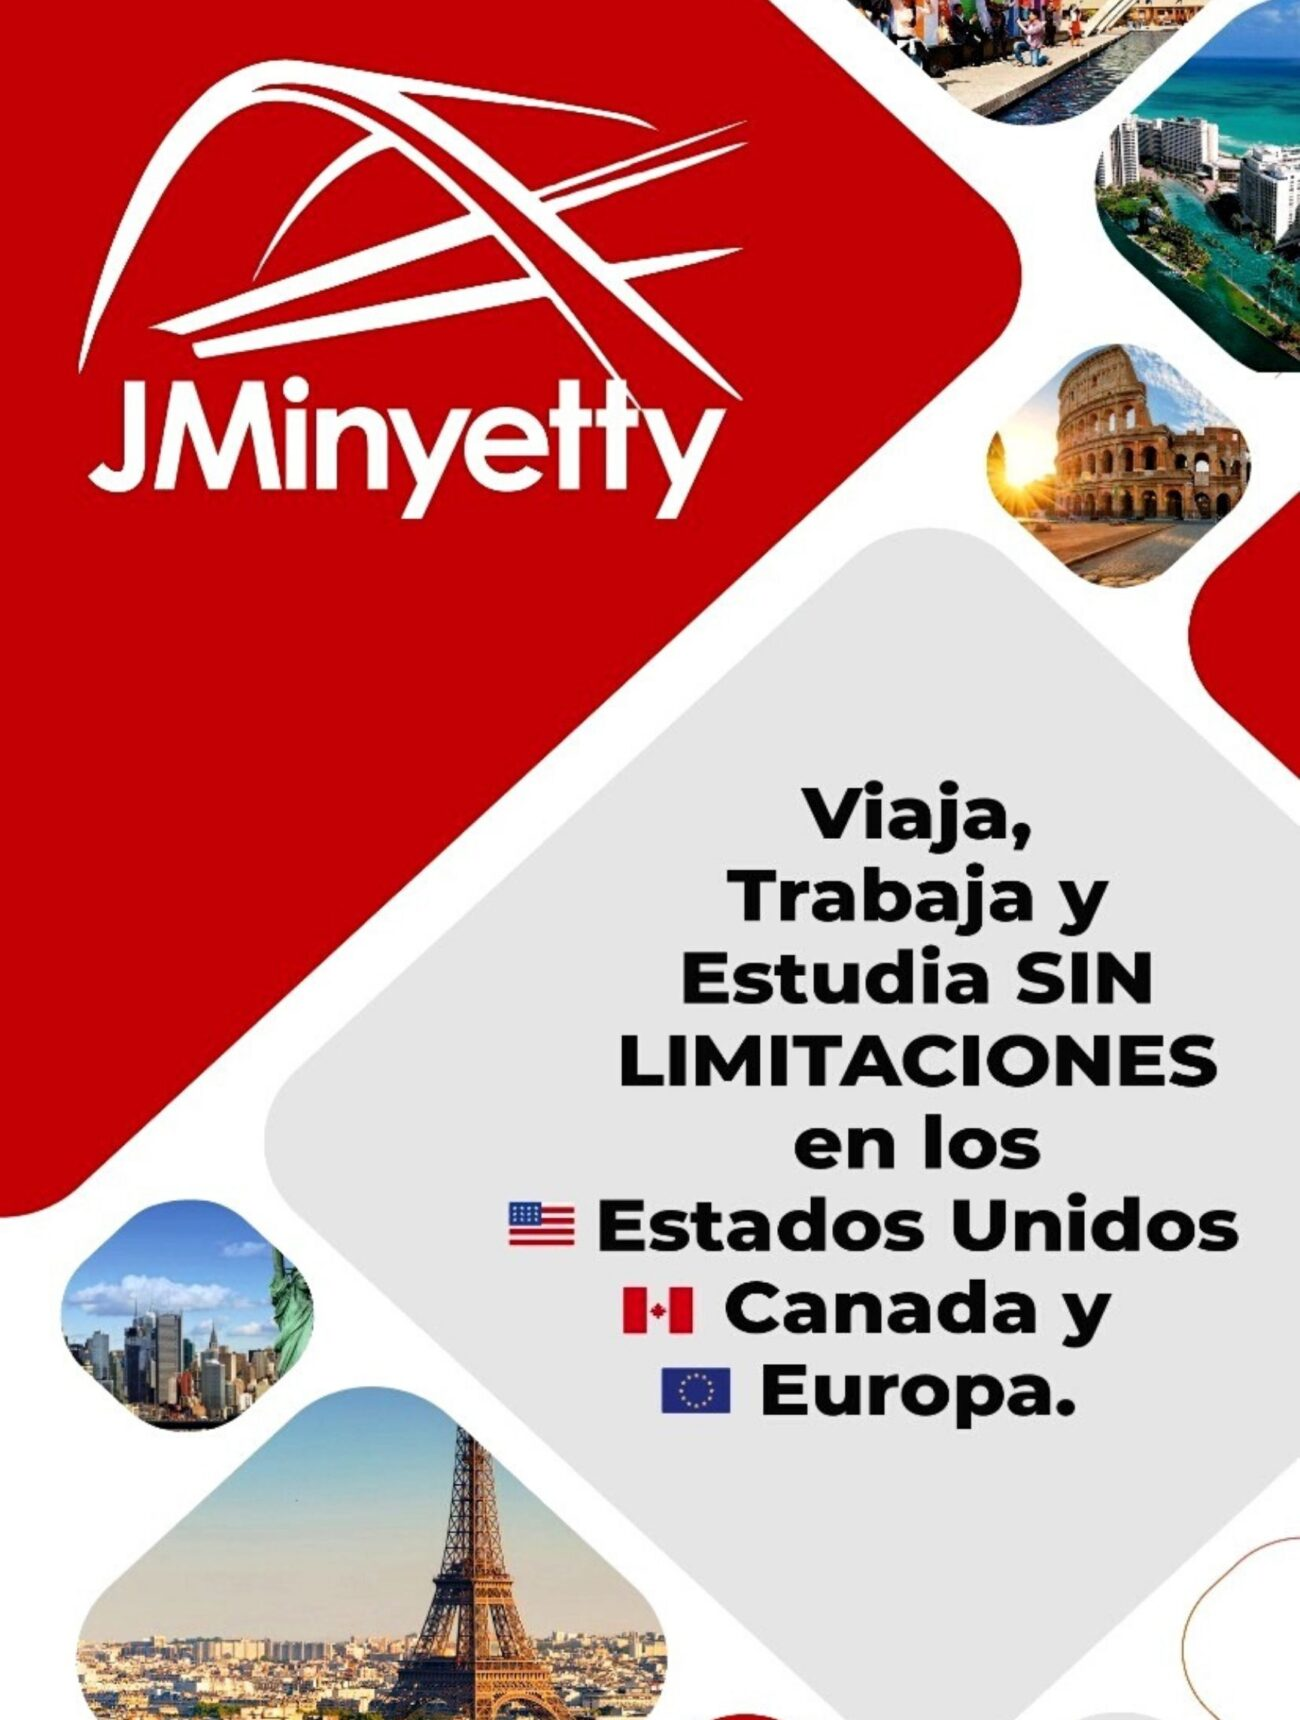 Jminyetty Travel and Consulting S.R.L